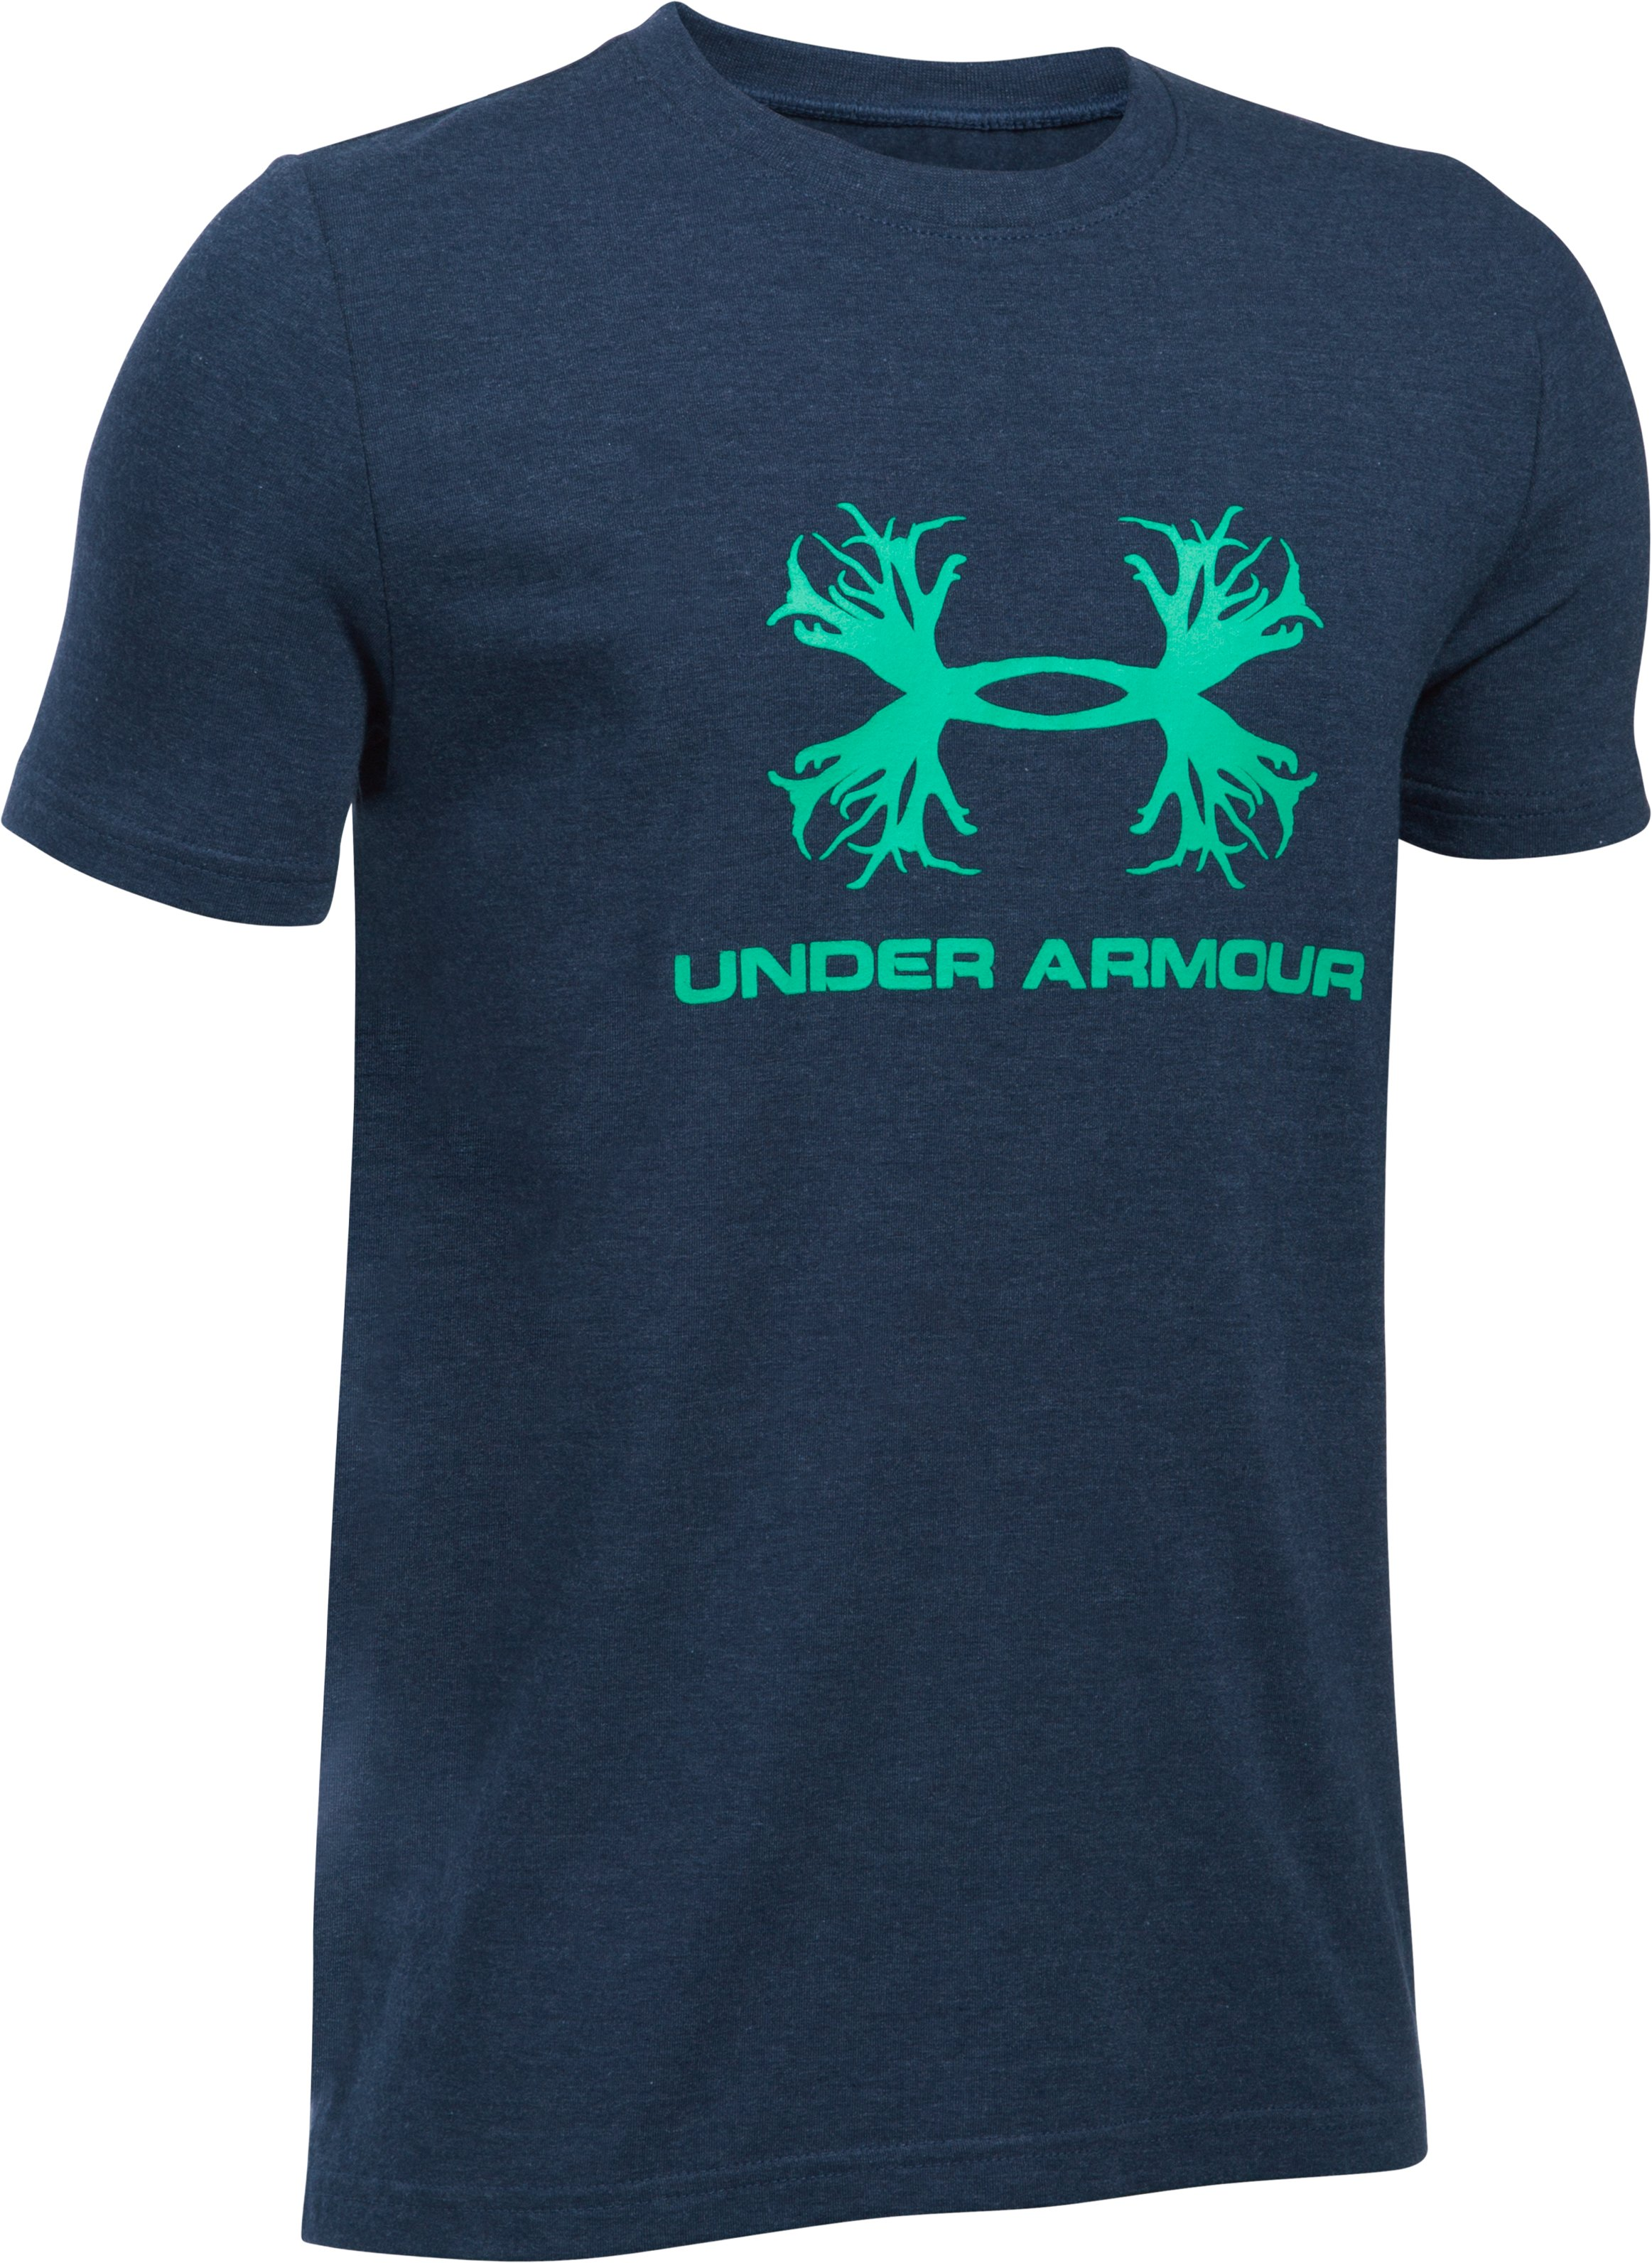 Boys' UA Antler Logo T-Shirt, MIDNIGHT NAVY MEDIUM HEATHER, undefined